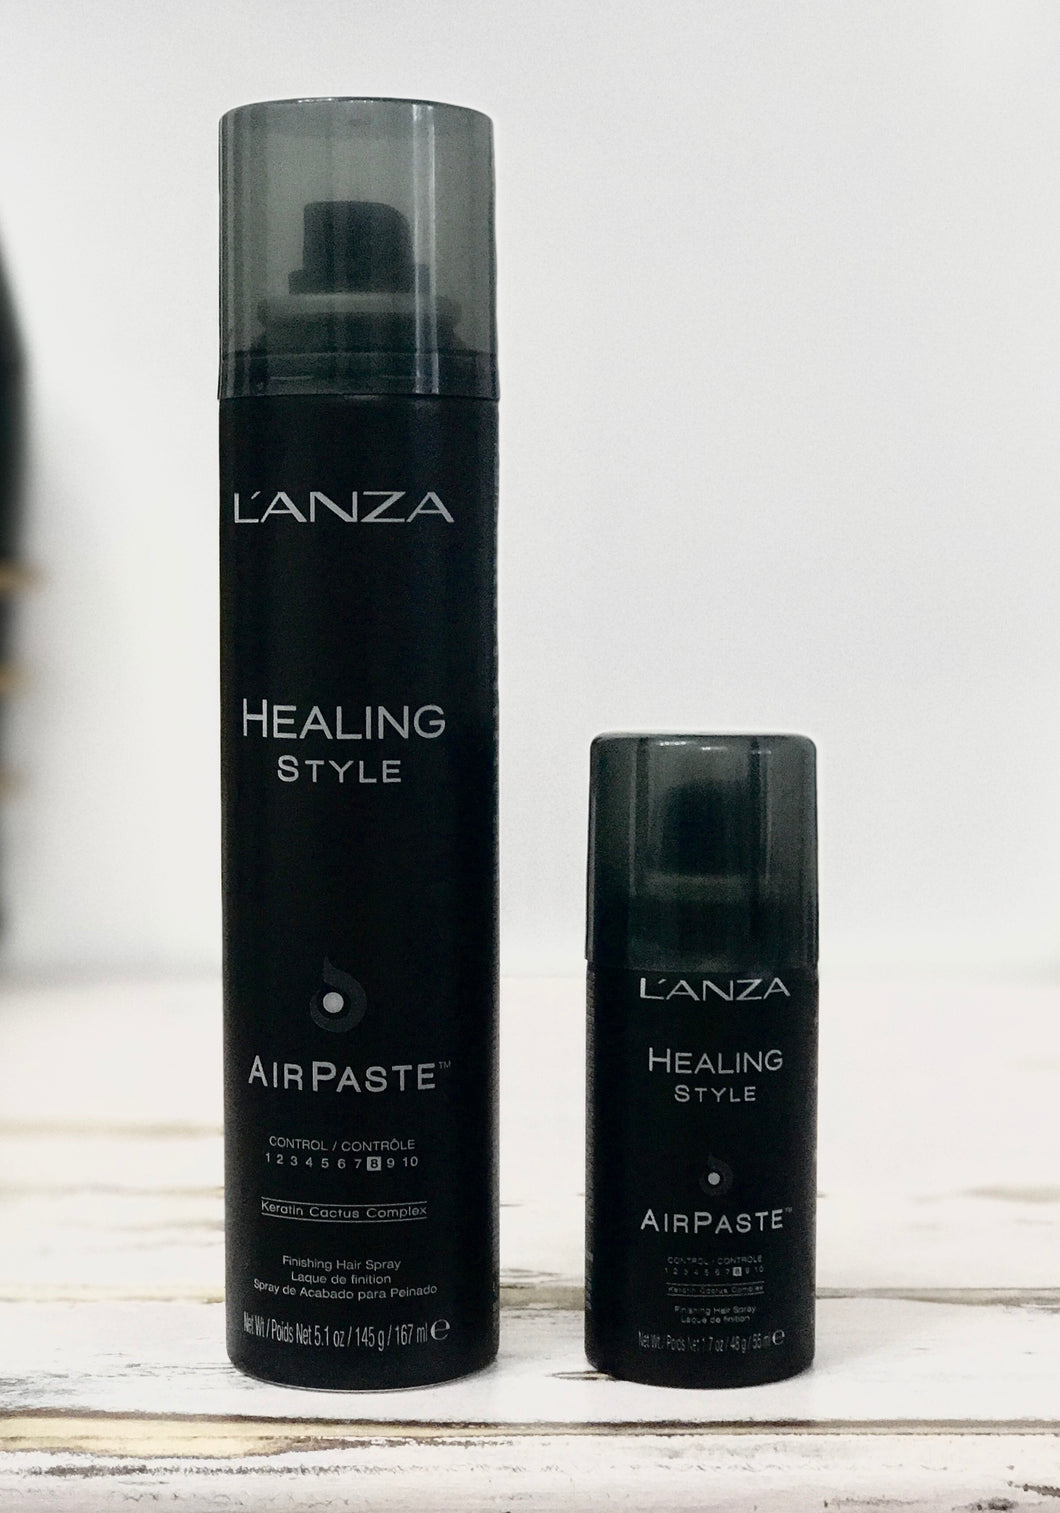 Lanza Healing Style Air Paste